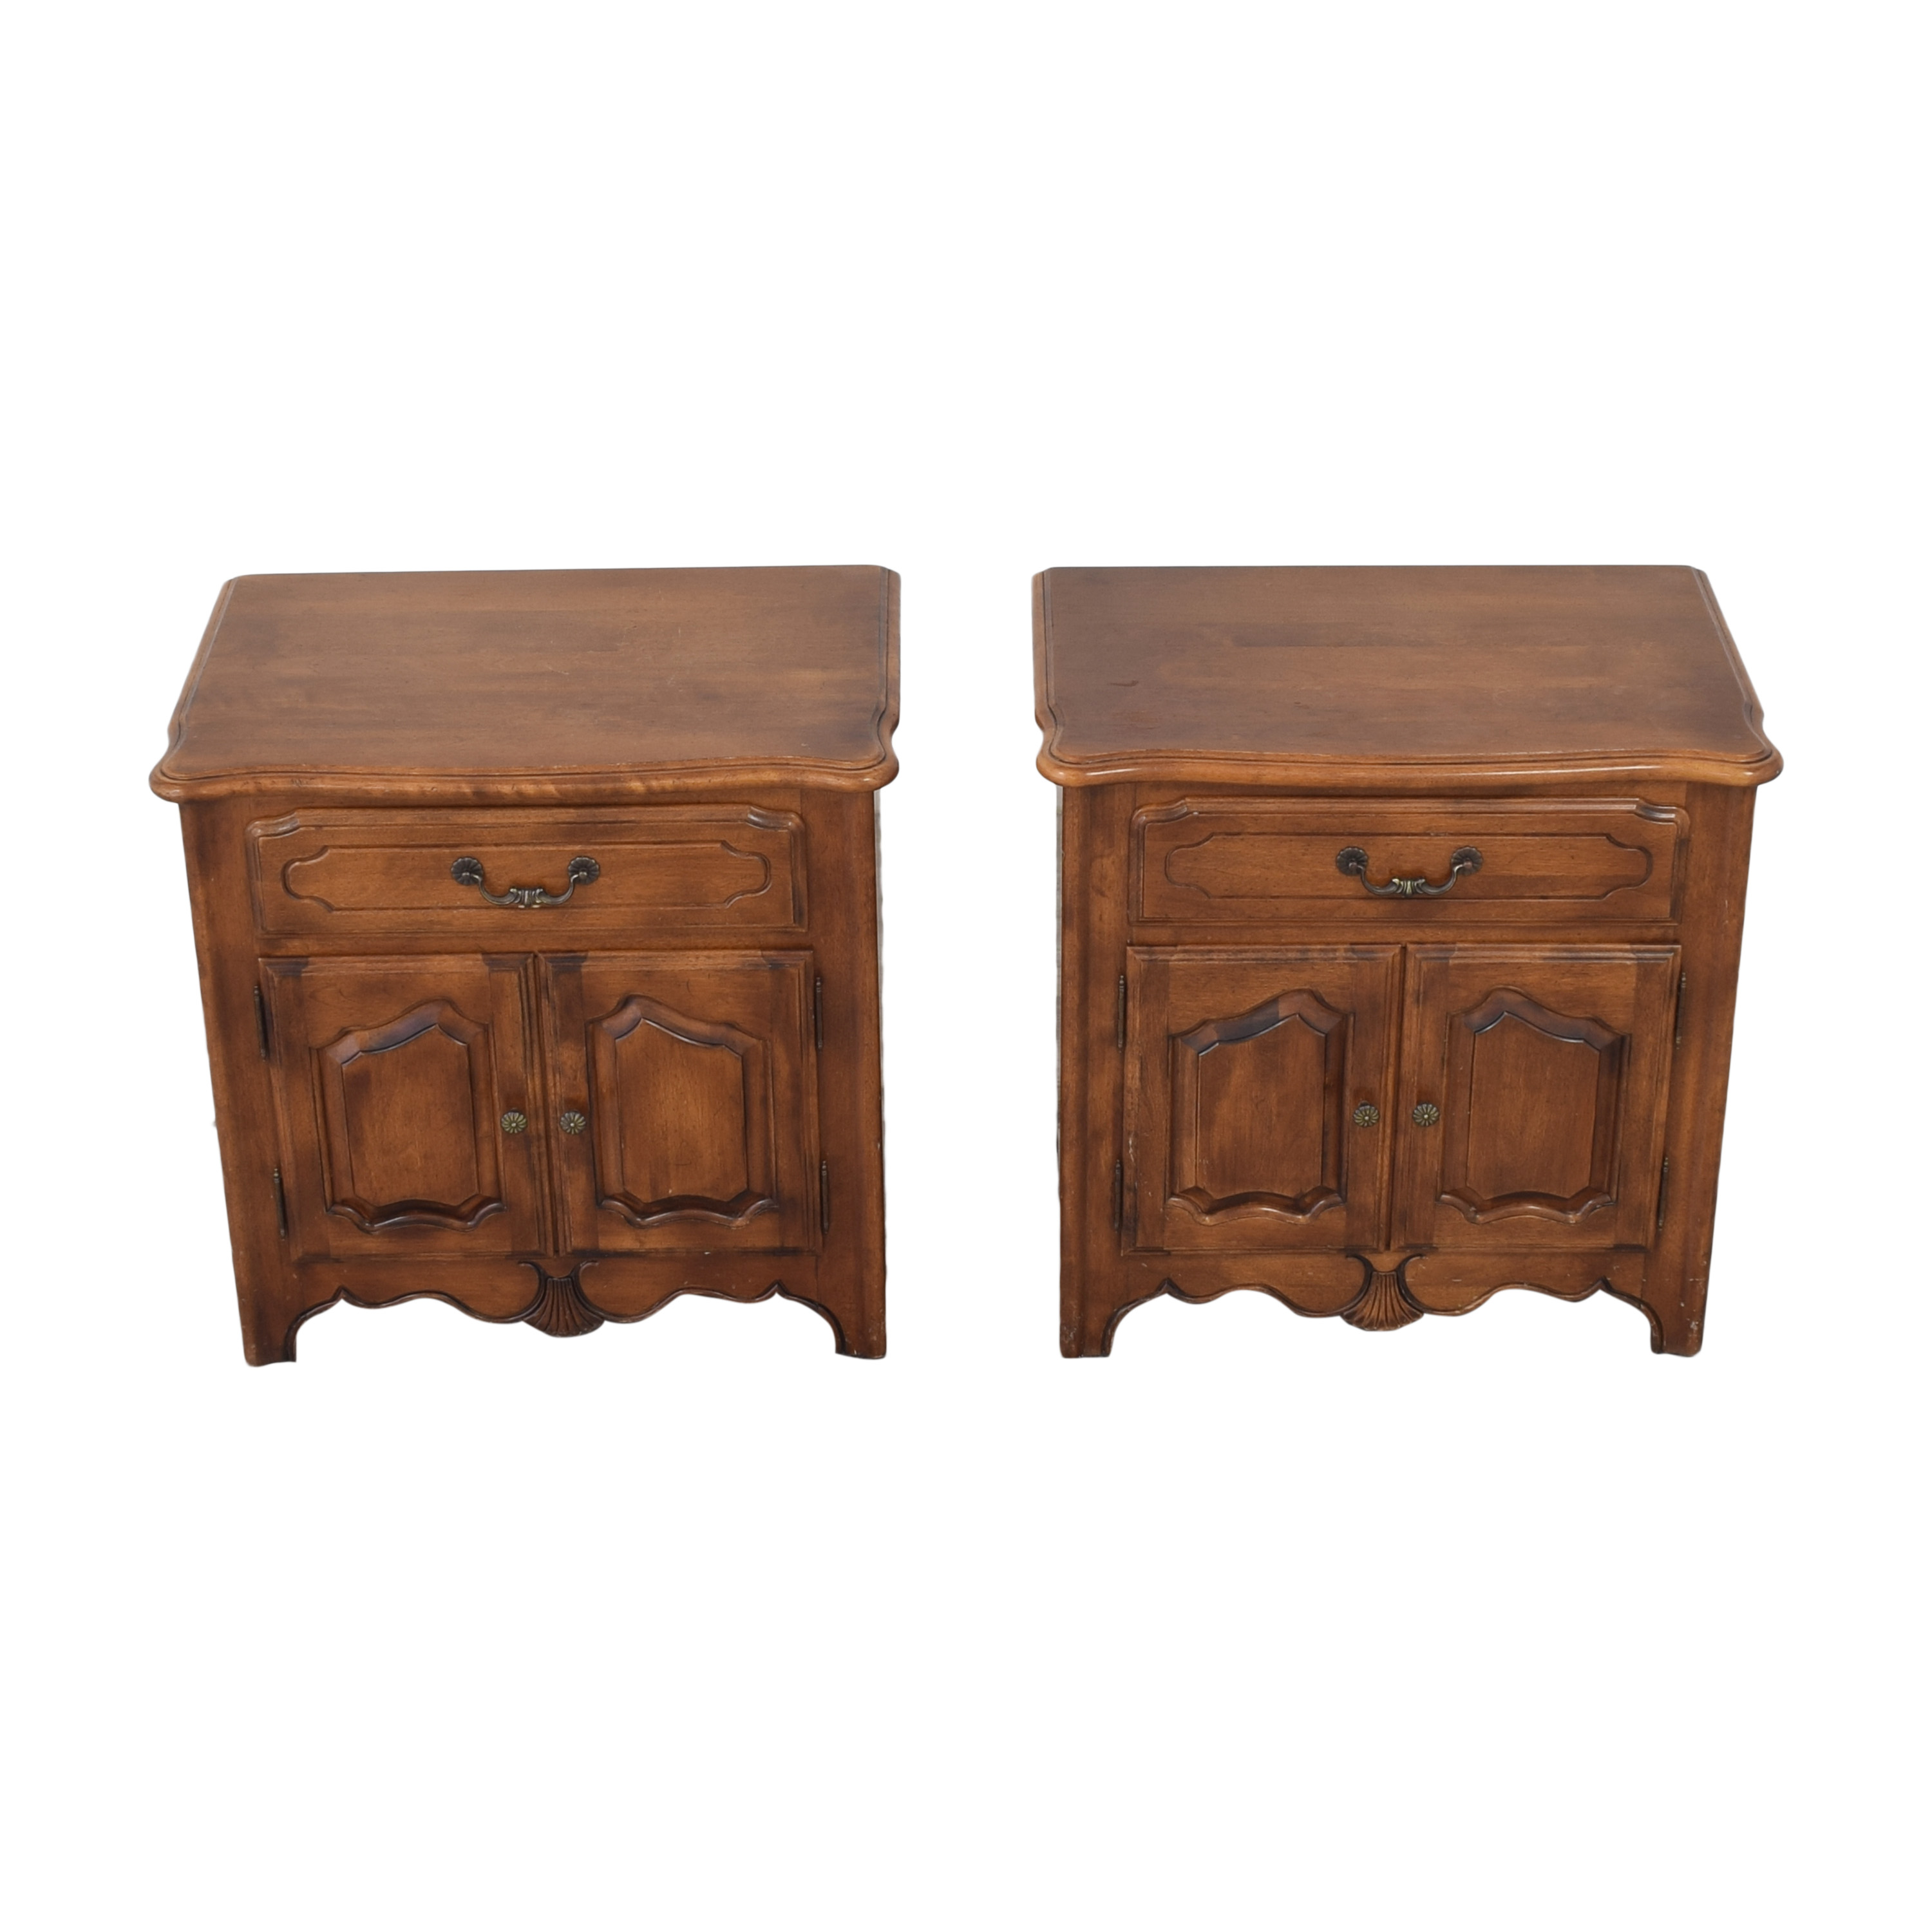 Ethan Allen Ethan Allen French Country Nightstands for sale